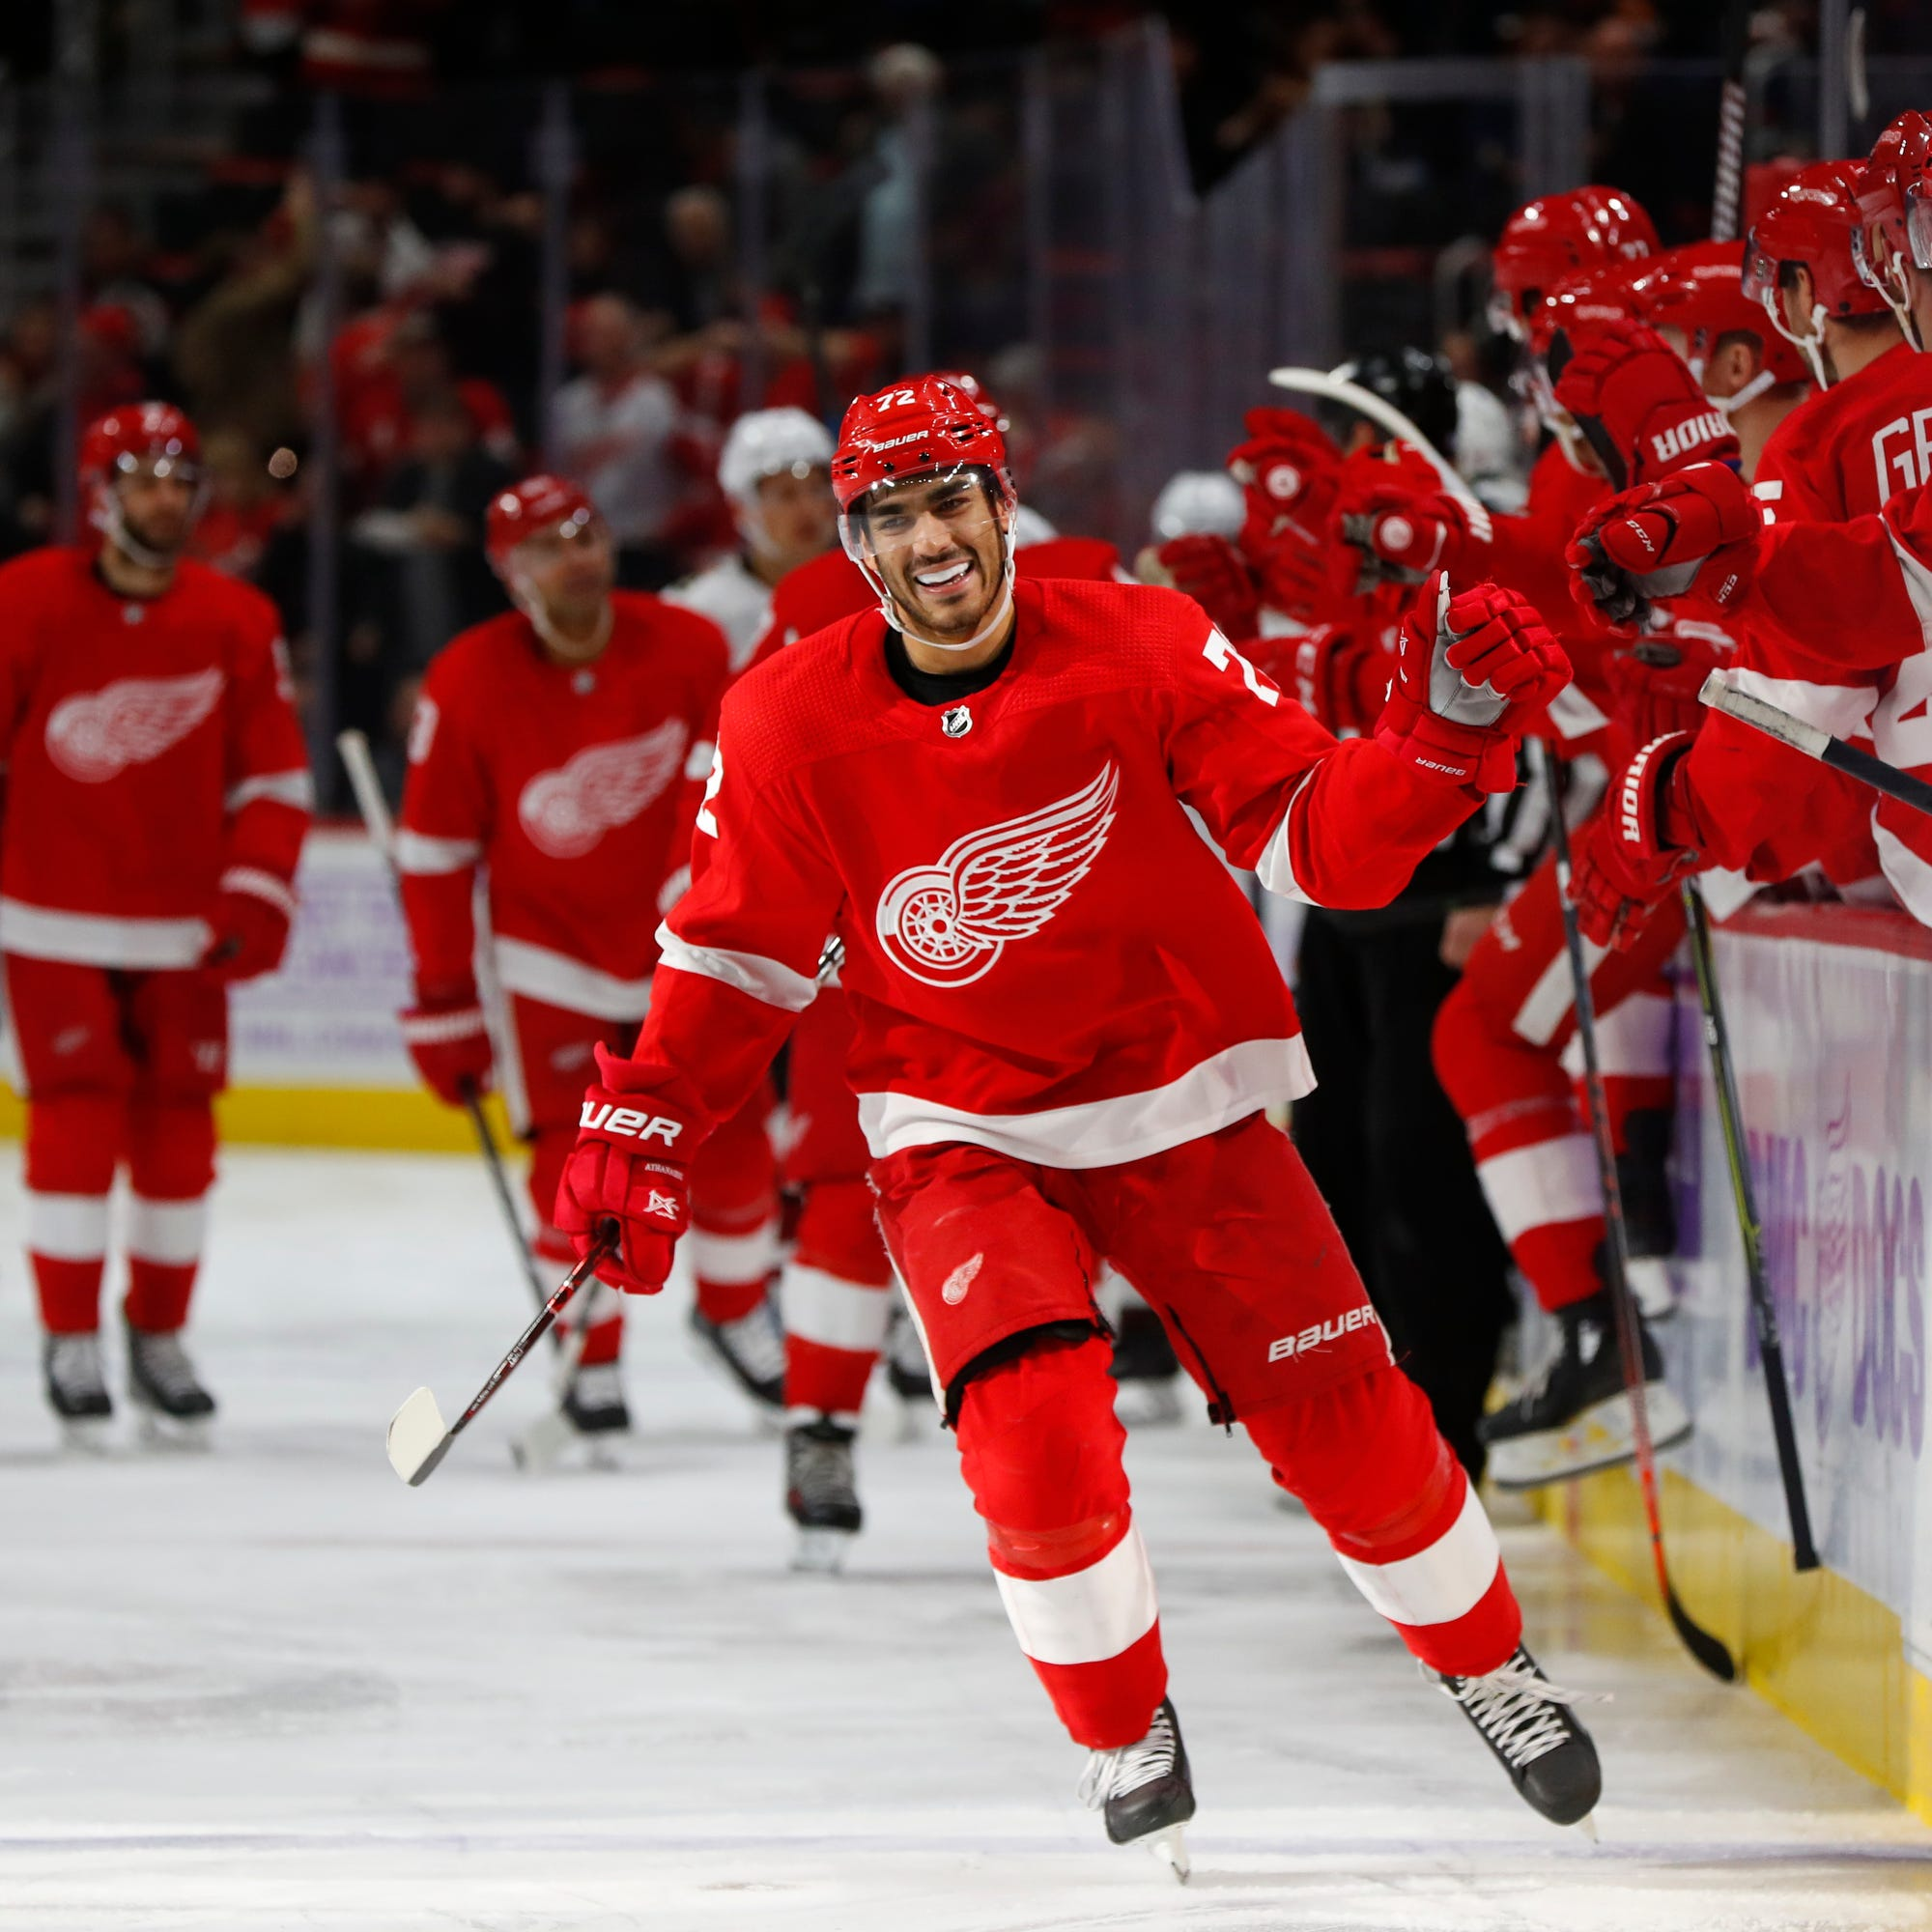 Krupa: Budding stars are lifting Red Wings to new heights